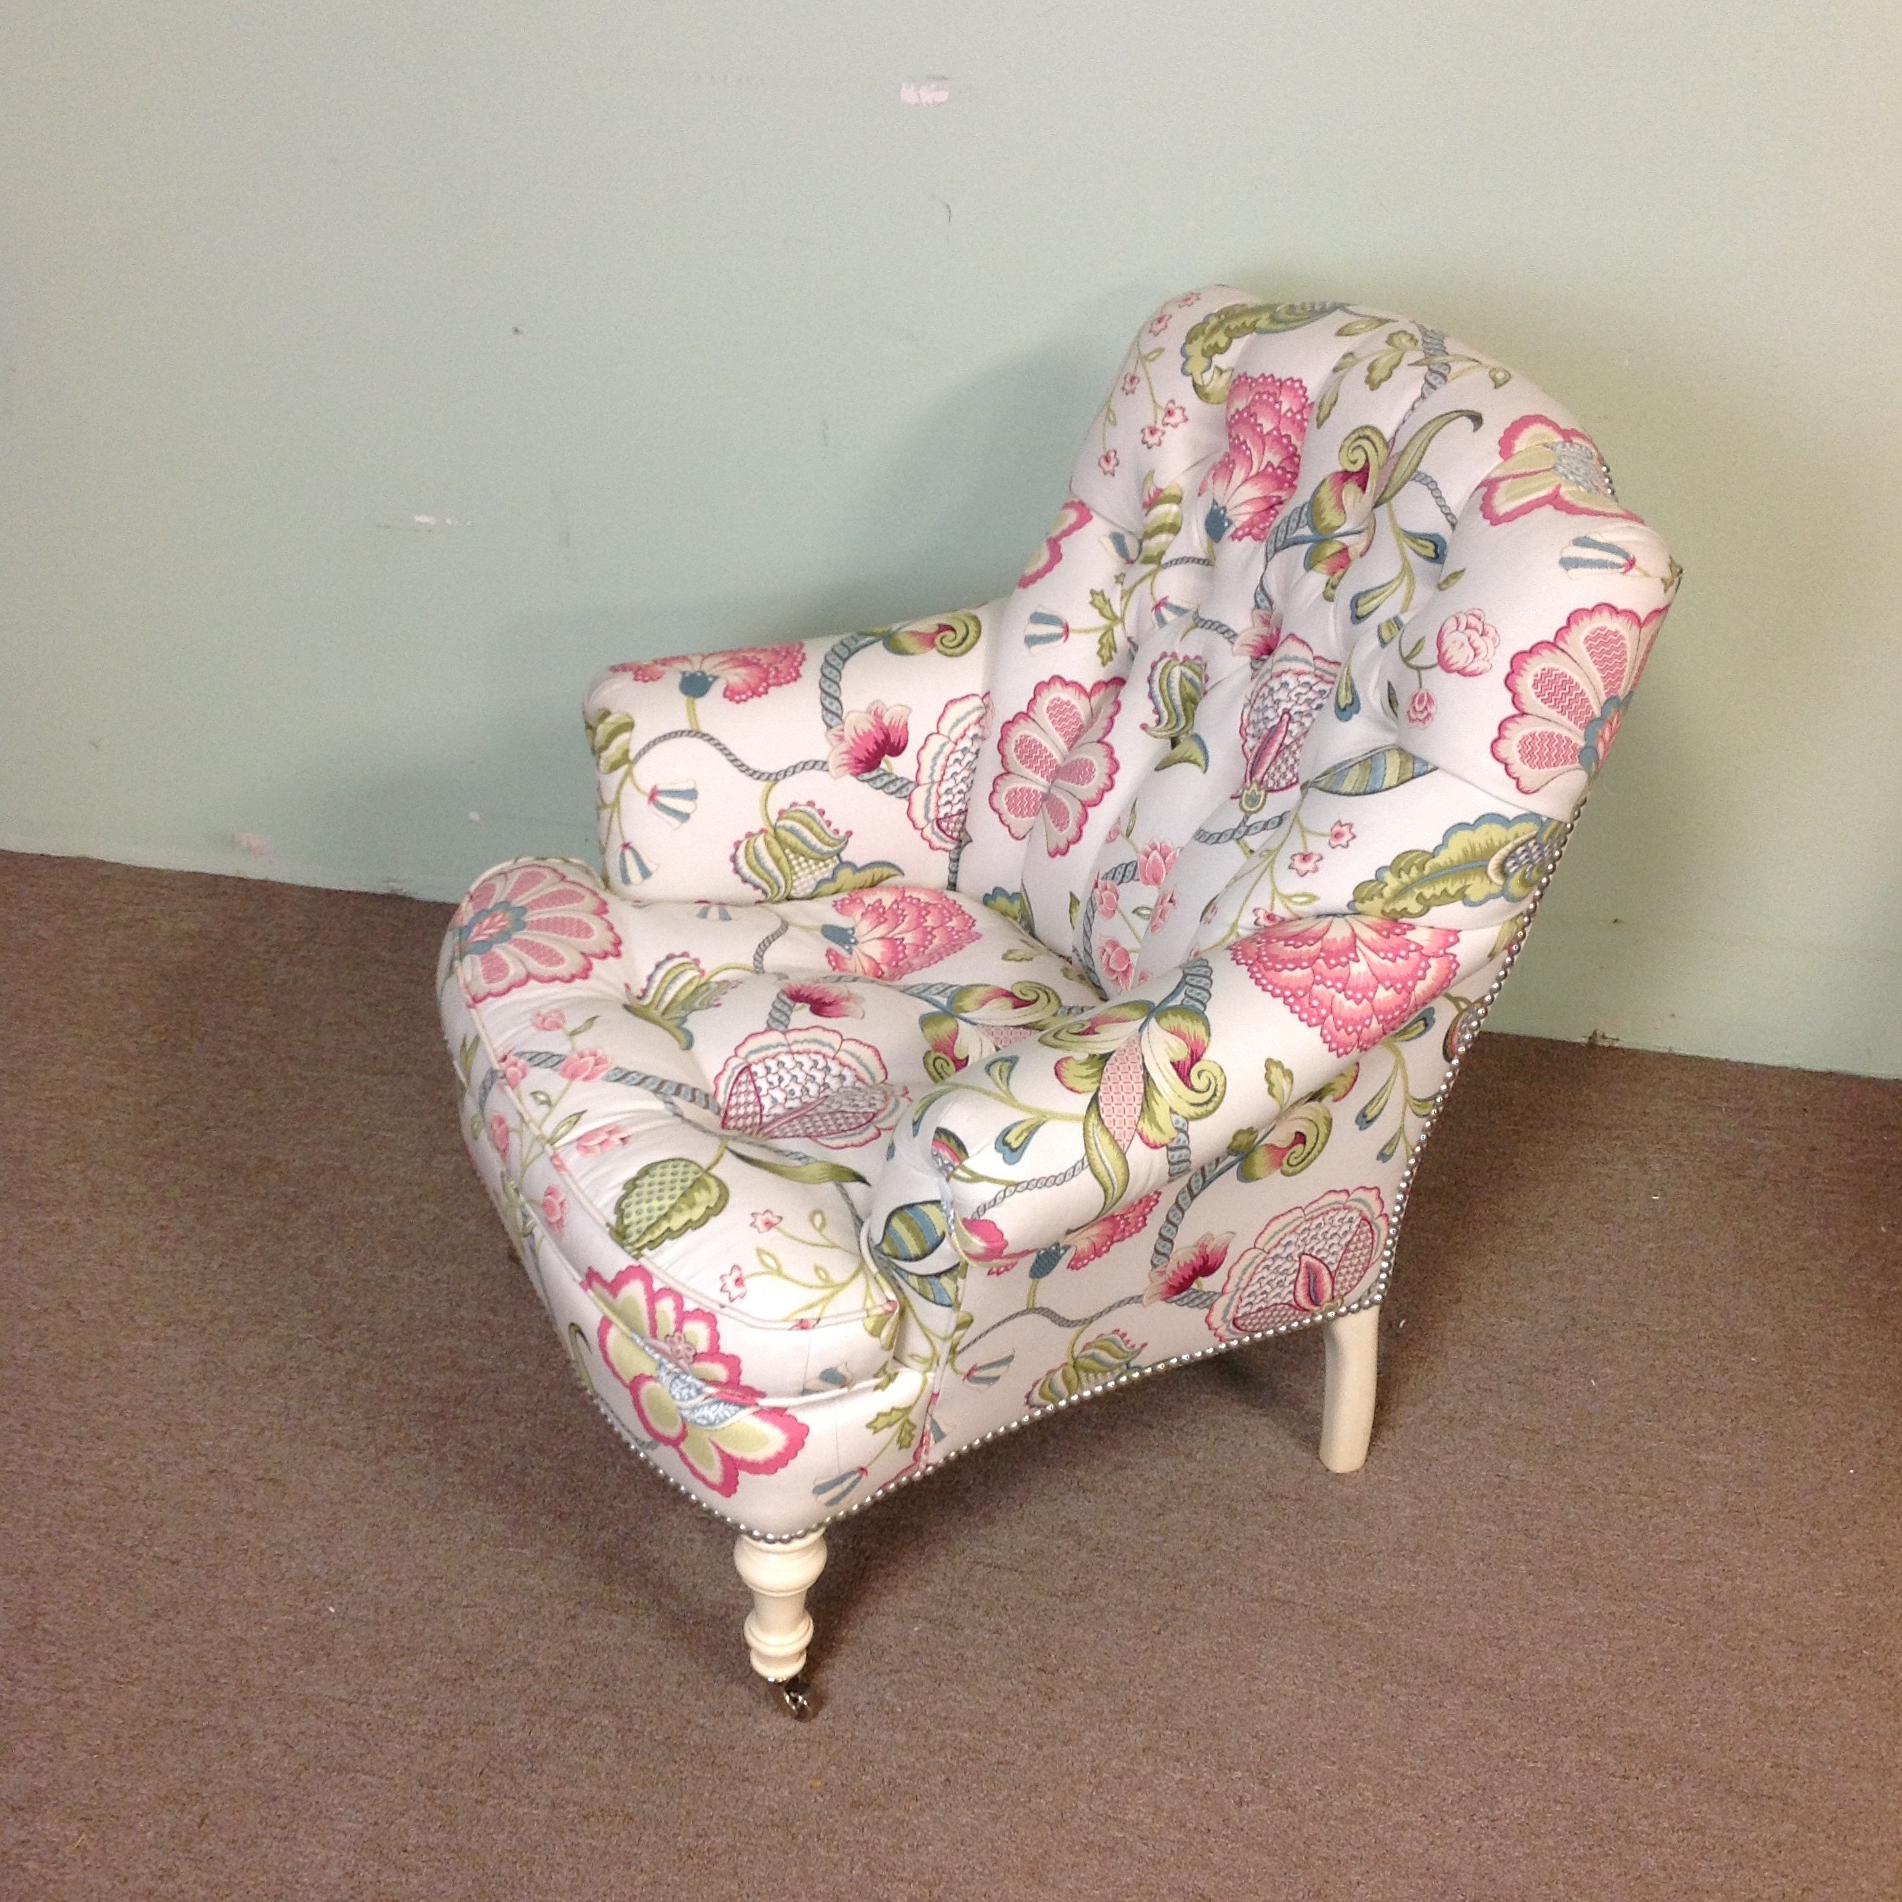 Lillian august albert tufted floral upholstered chair chairish